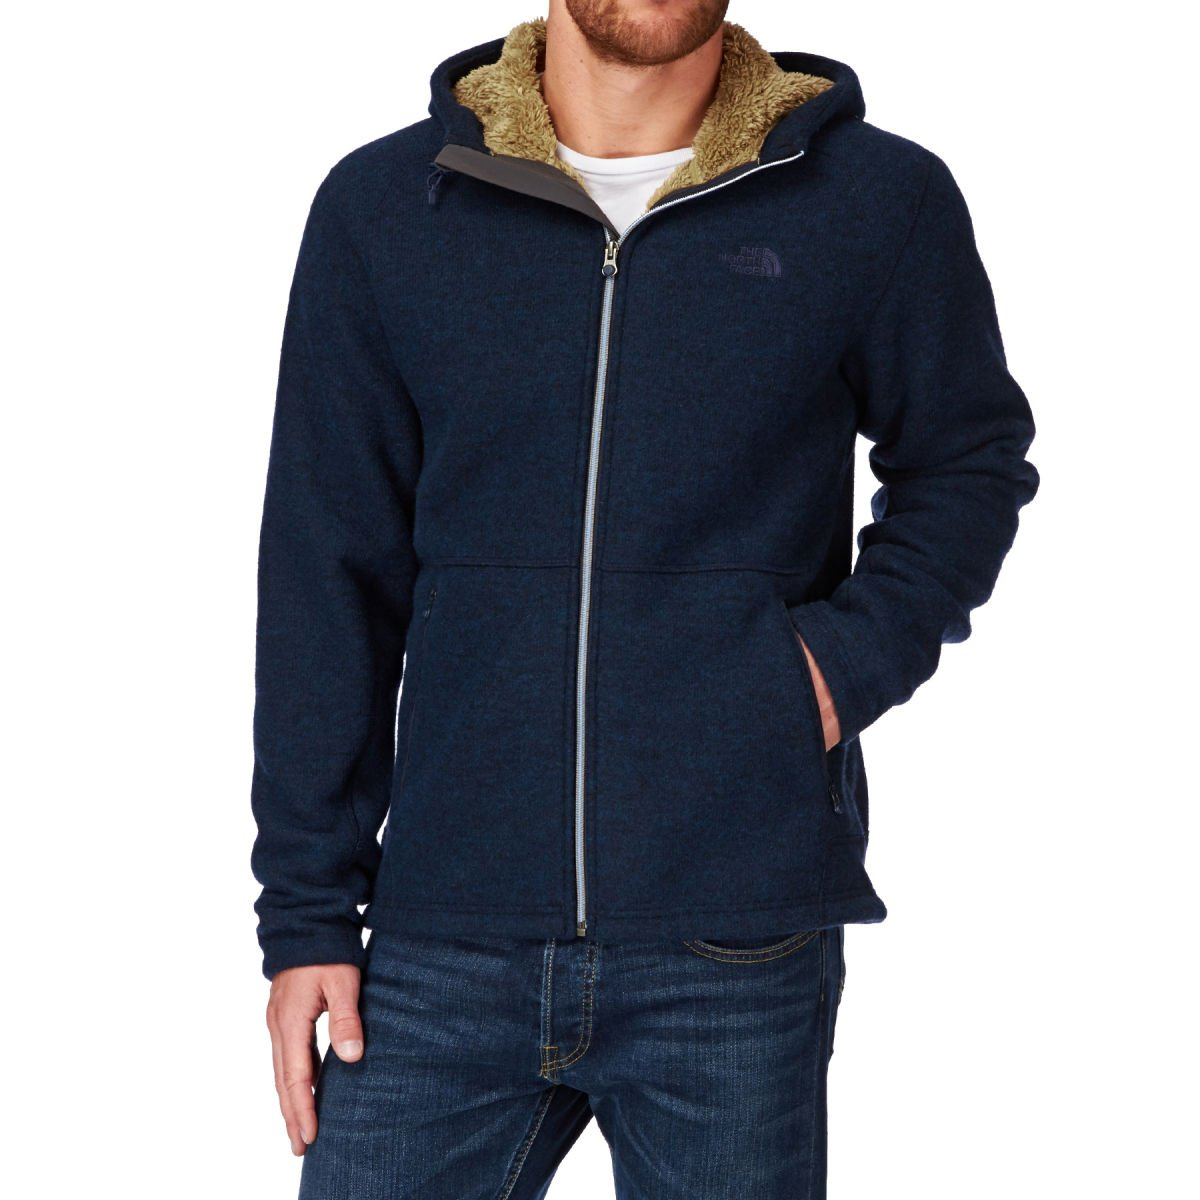 THE NORTH FACE Herren Fleecejacke Zermatt Full Zip Hoodie kaufen